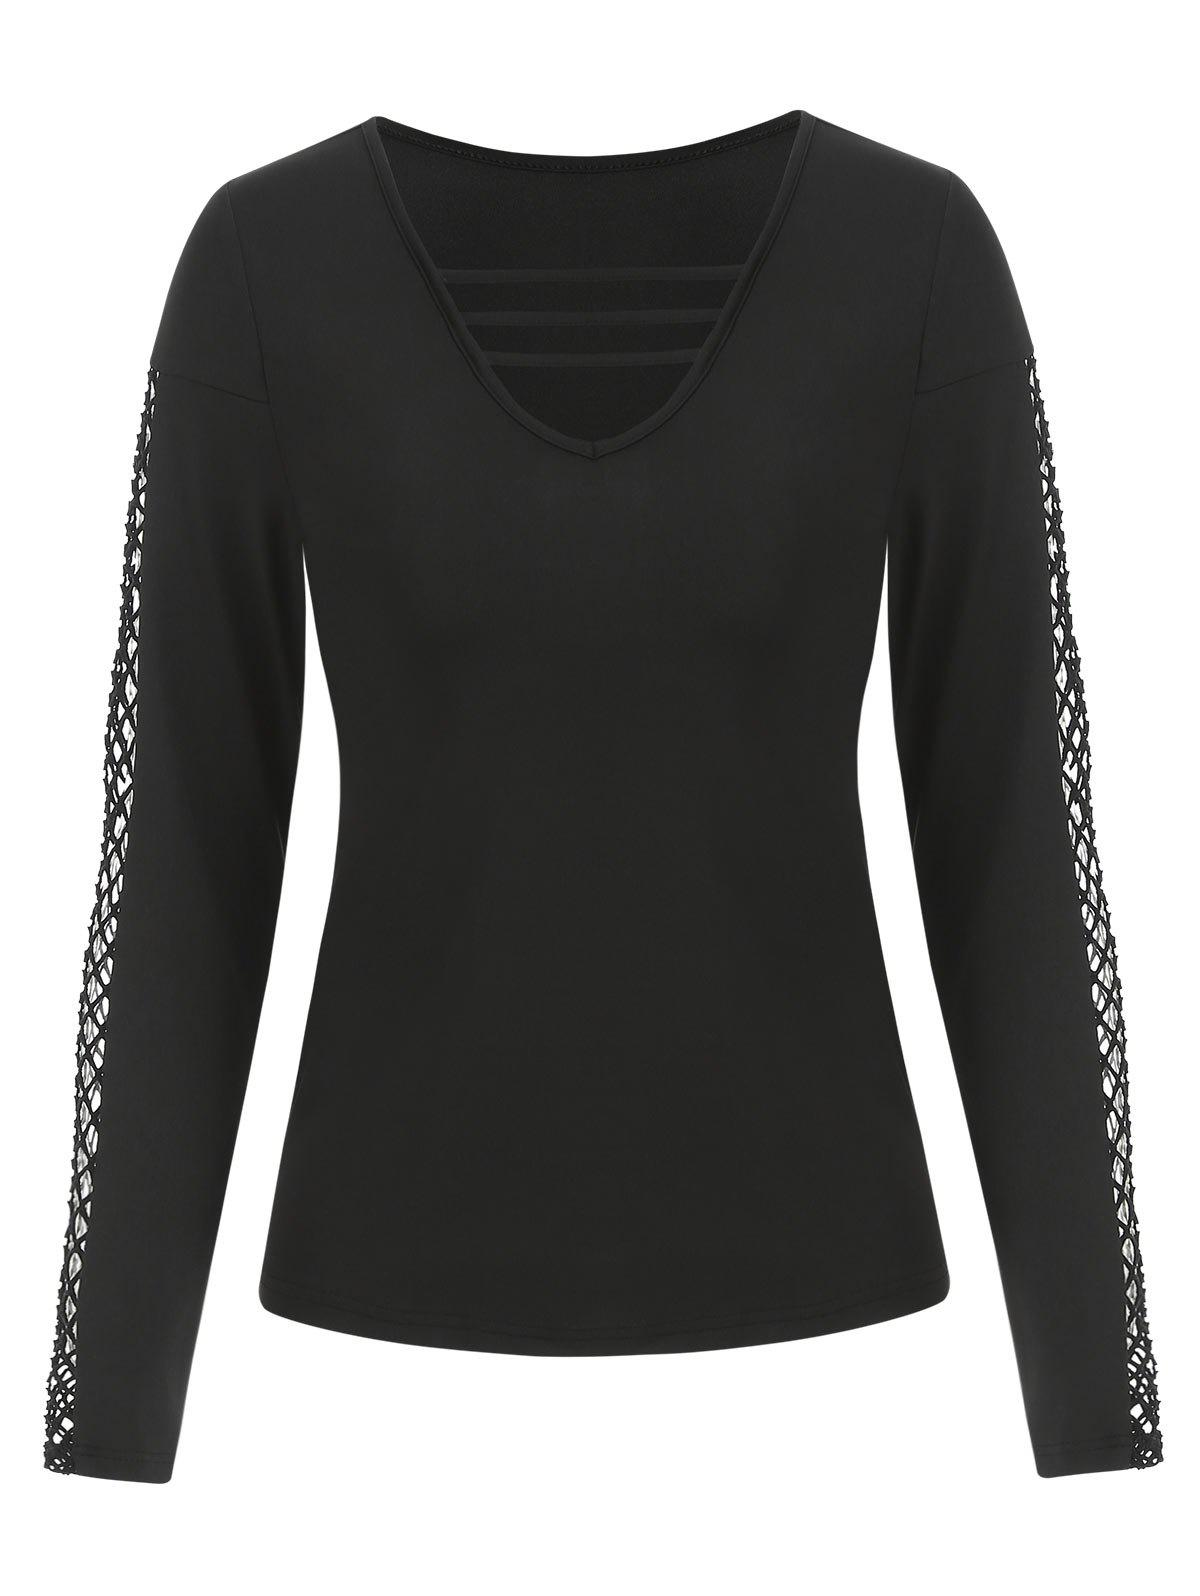 Chic Long Sleeve Lattice Fishnet Insert T-shirt